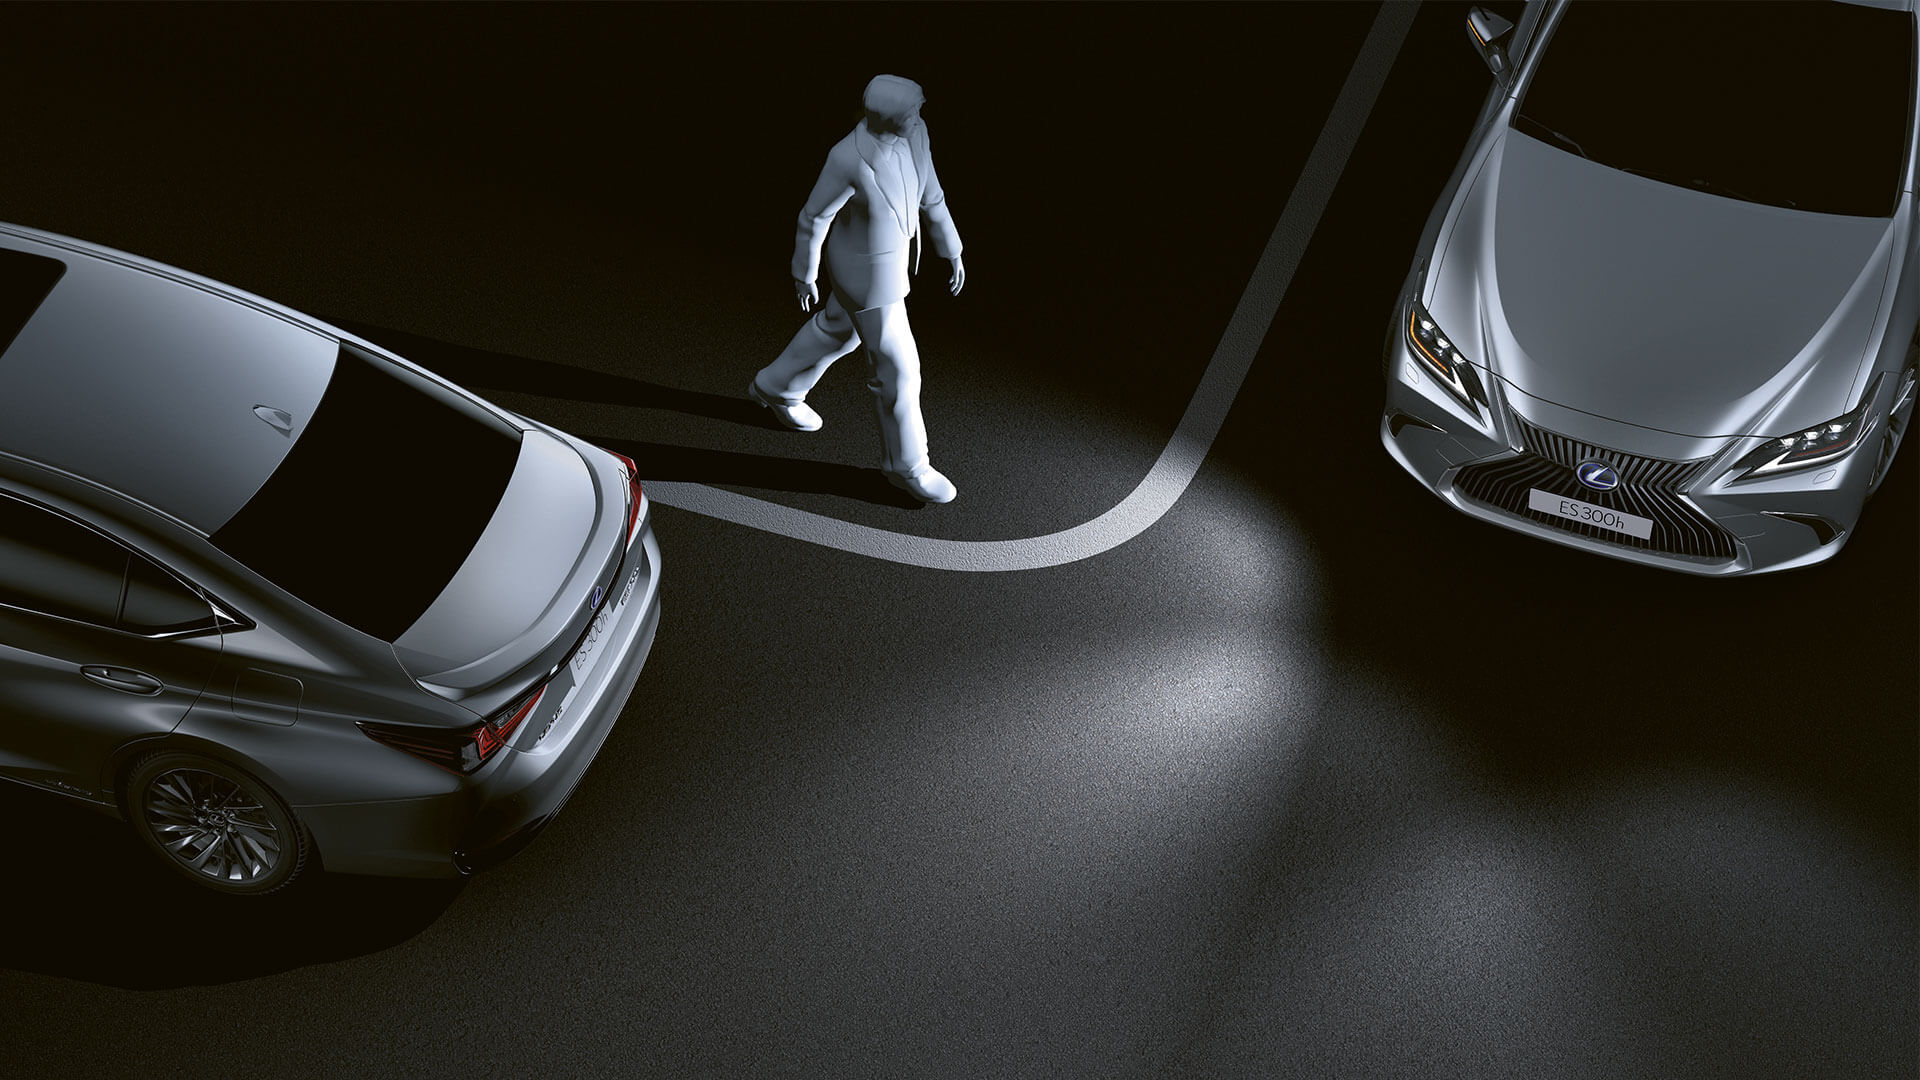 2019 lexus es hybrid experience feature cornering lights